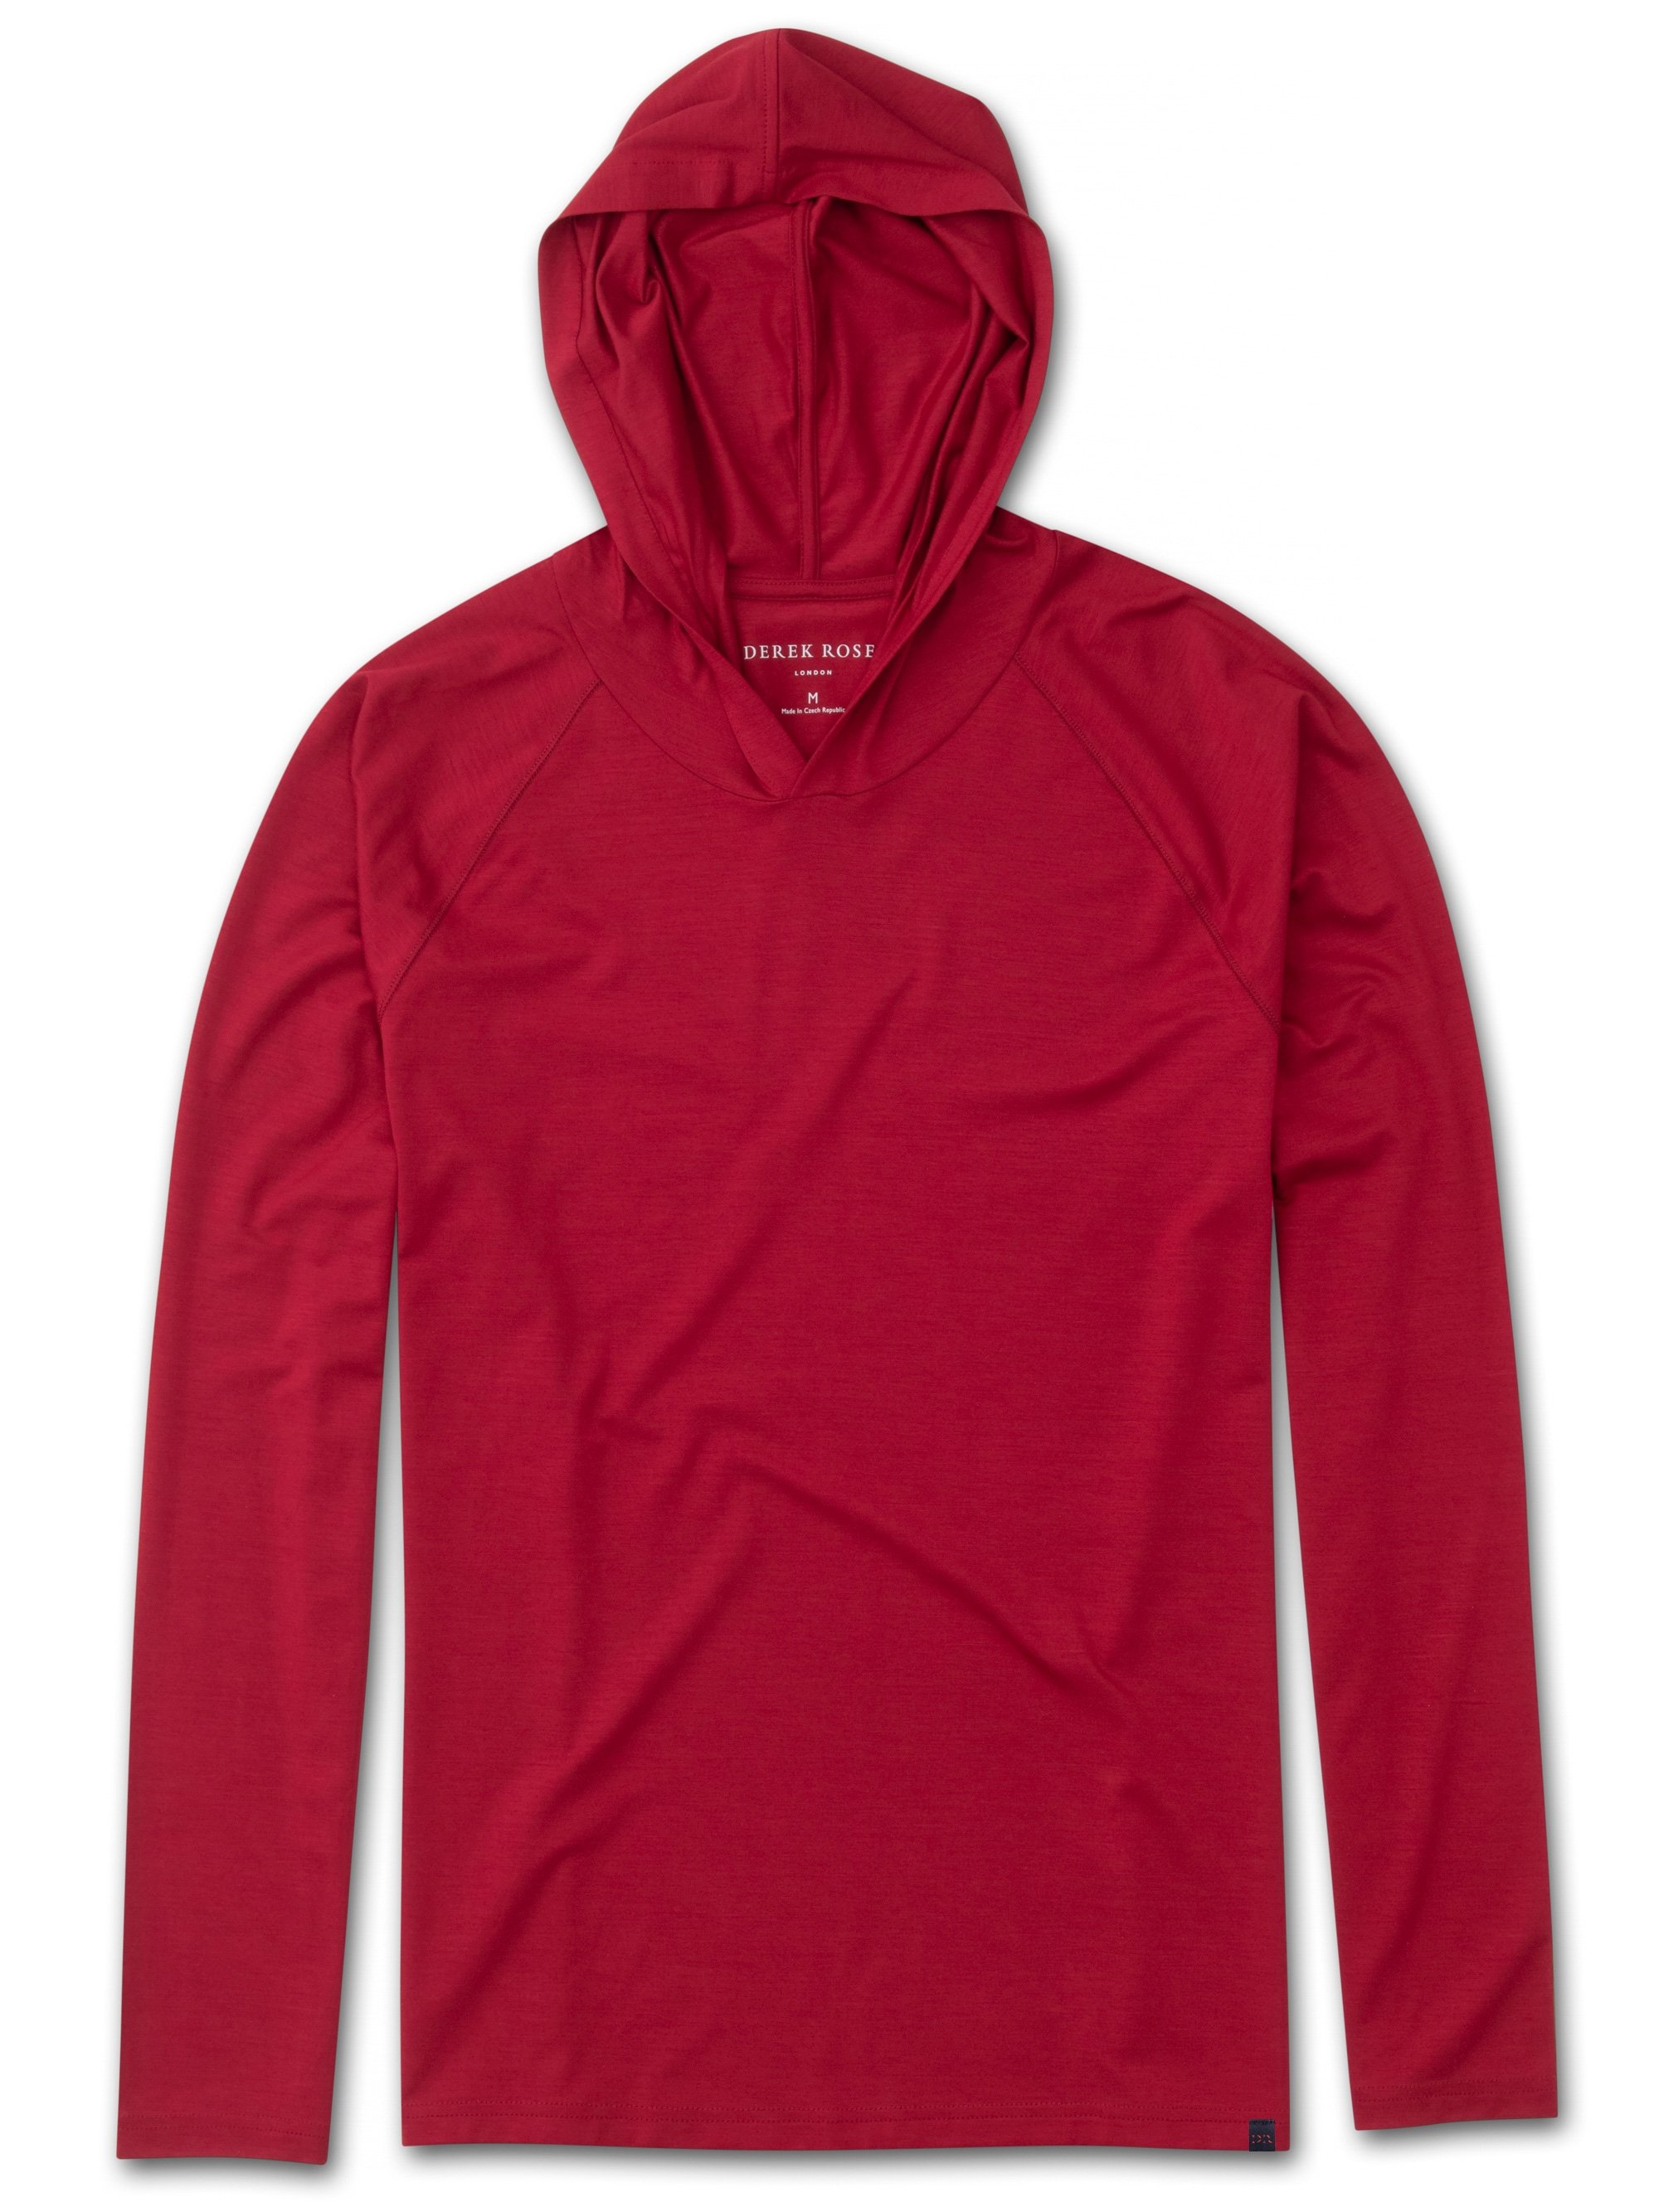 Men's Jersey Pullover Hoodie Basel 8 Micro Modal Stretch Red